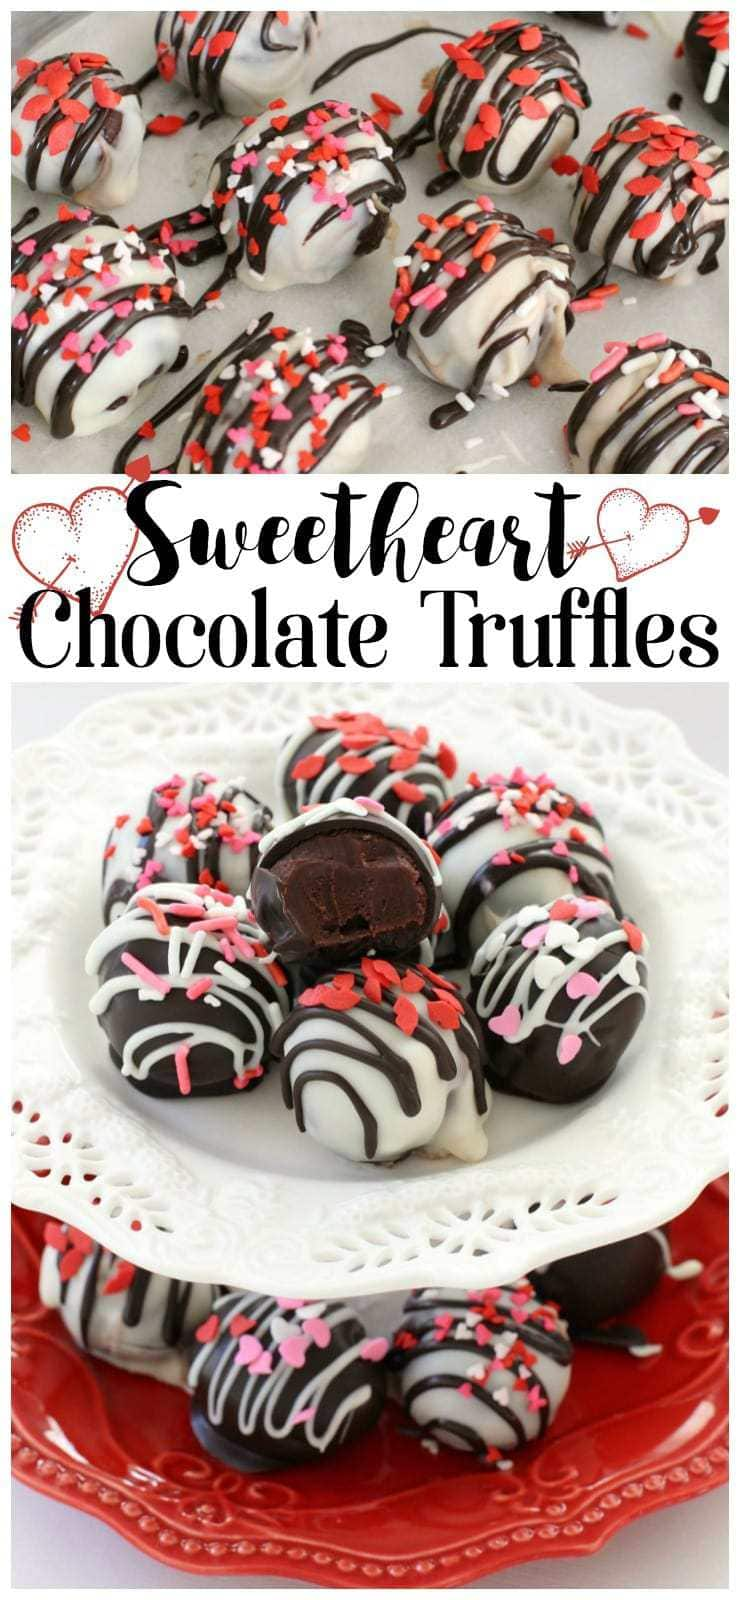 These simple Chocolate Sweetheart Truffles are smooth, creamy and perfectly sweet; your sweetheart will swoon over these tasty little treats!